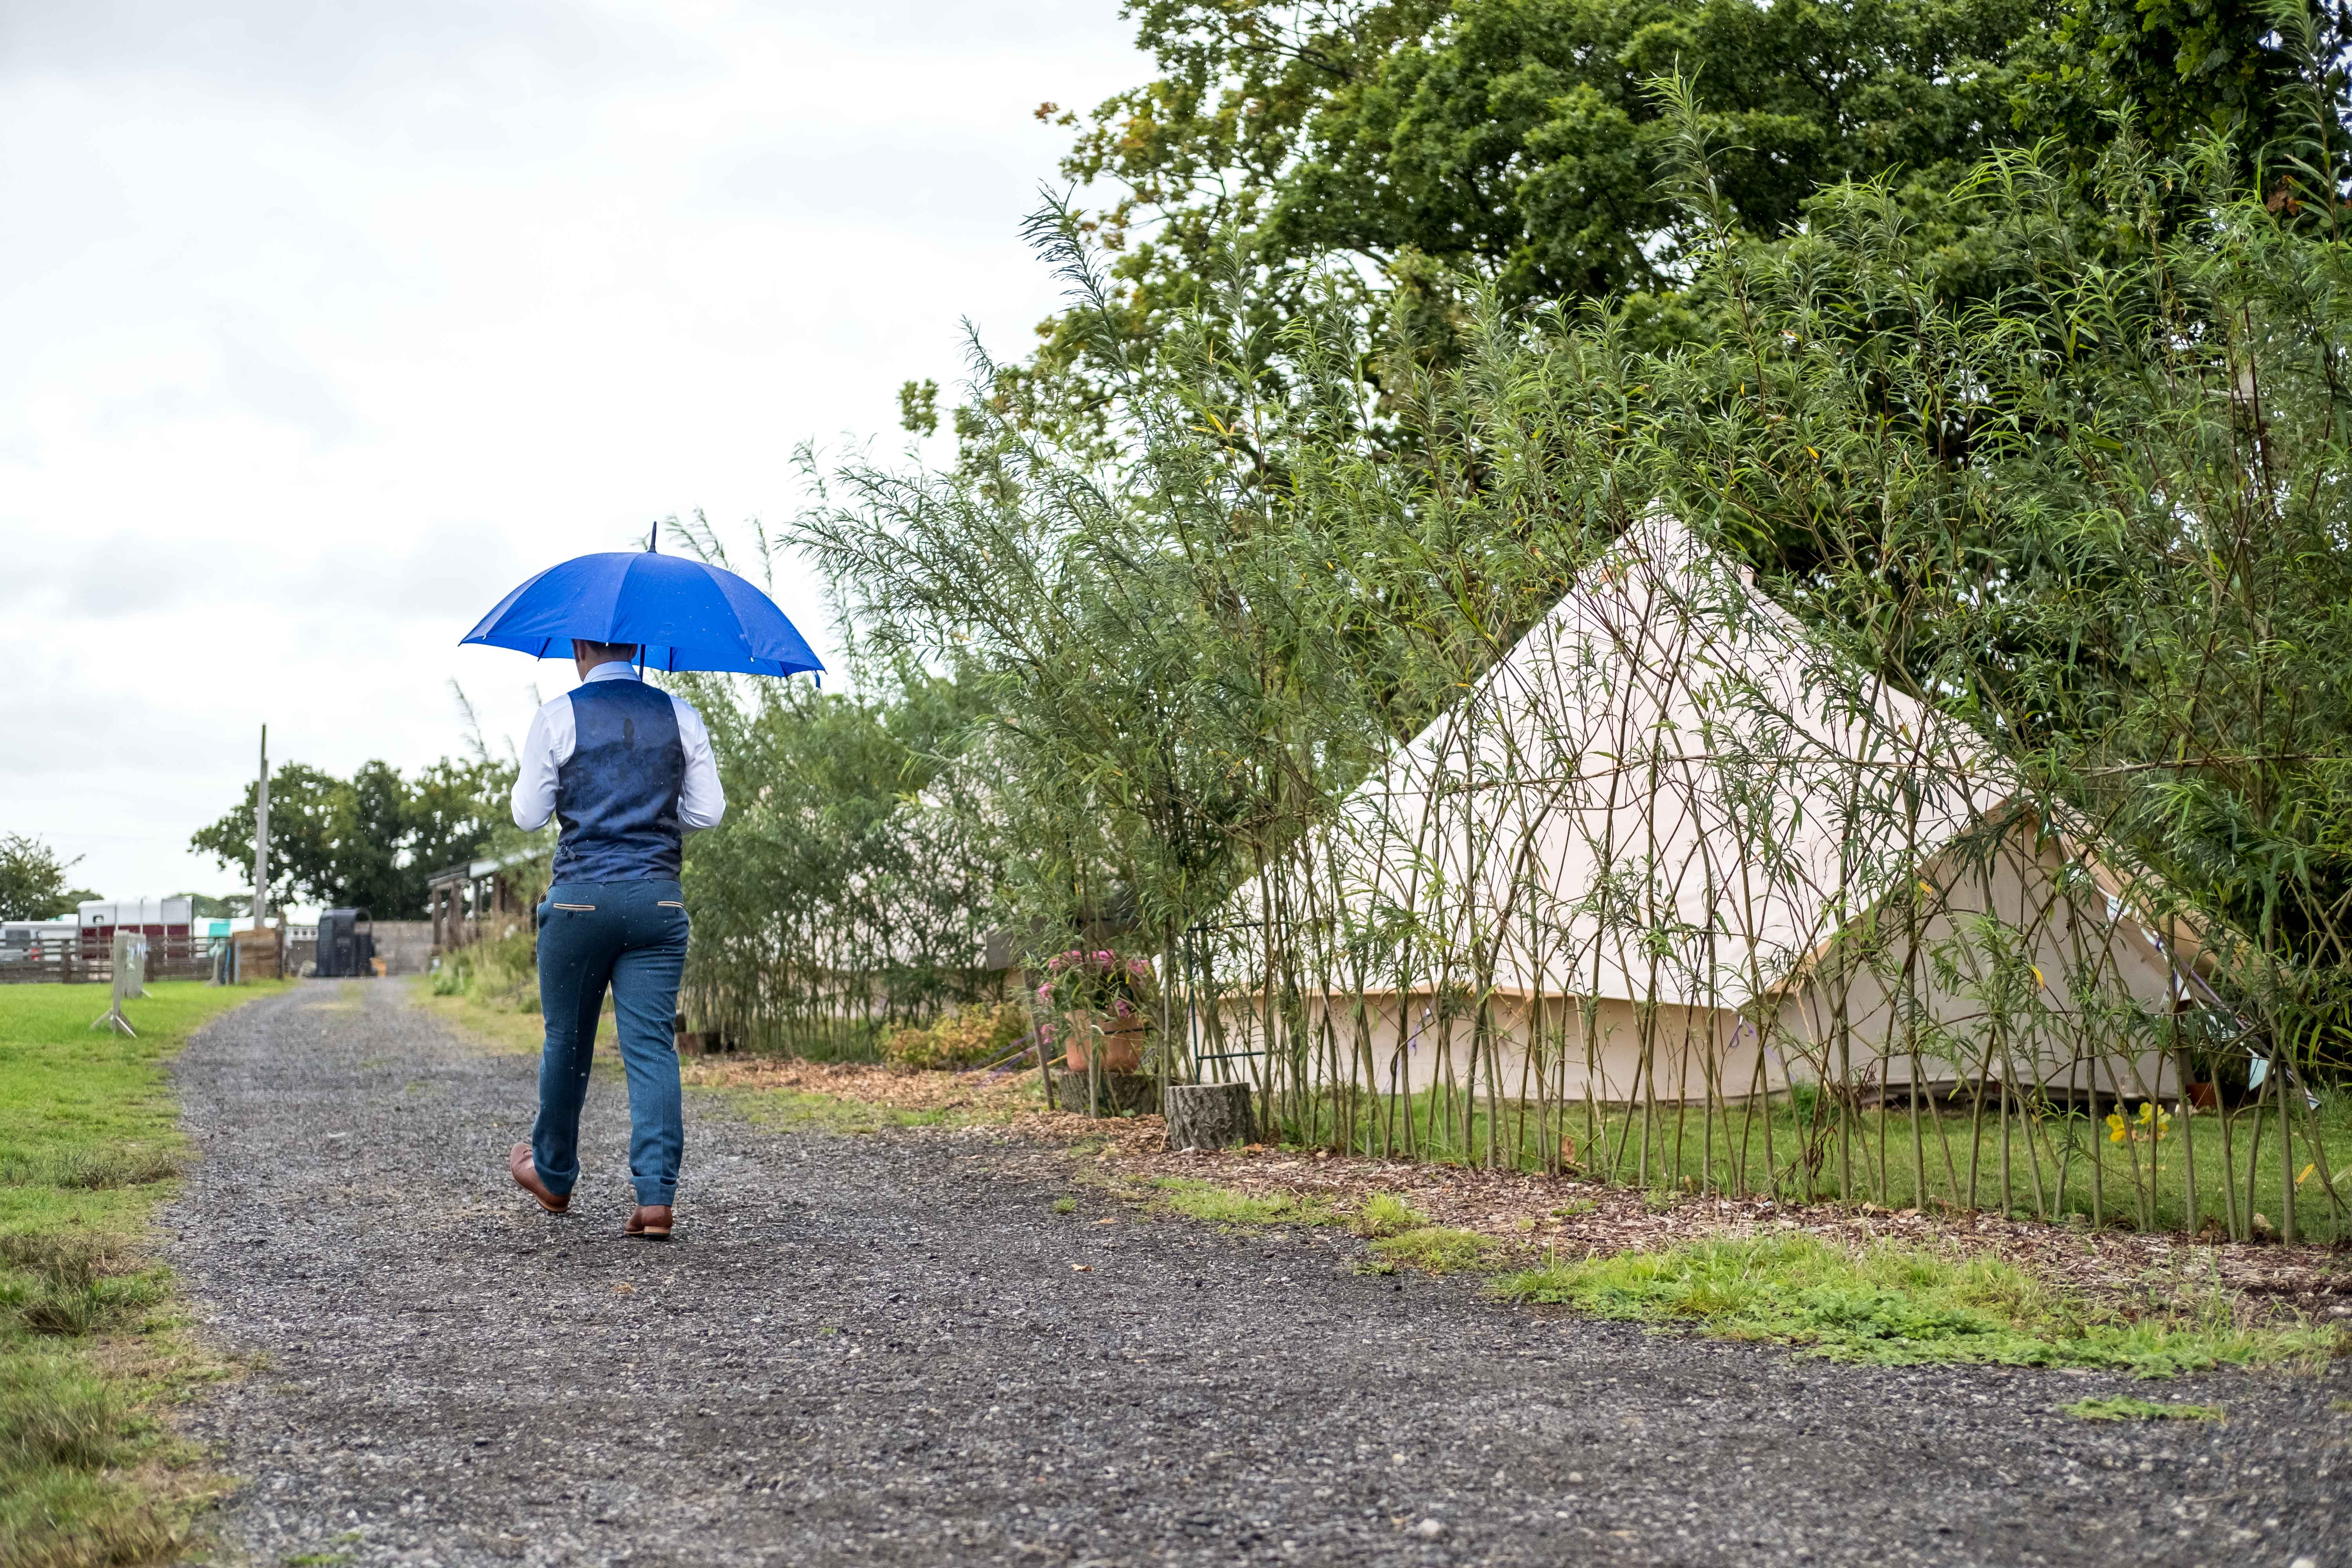 Chester wedding Photographer - Groom walking with an umbrella in the rain, walking past a teepee at his wedding in King Acres